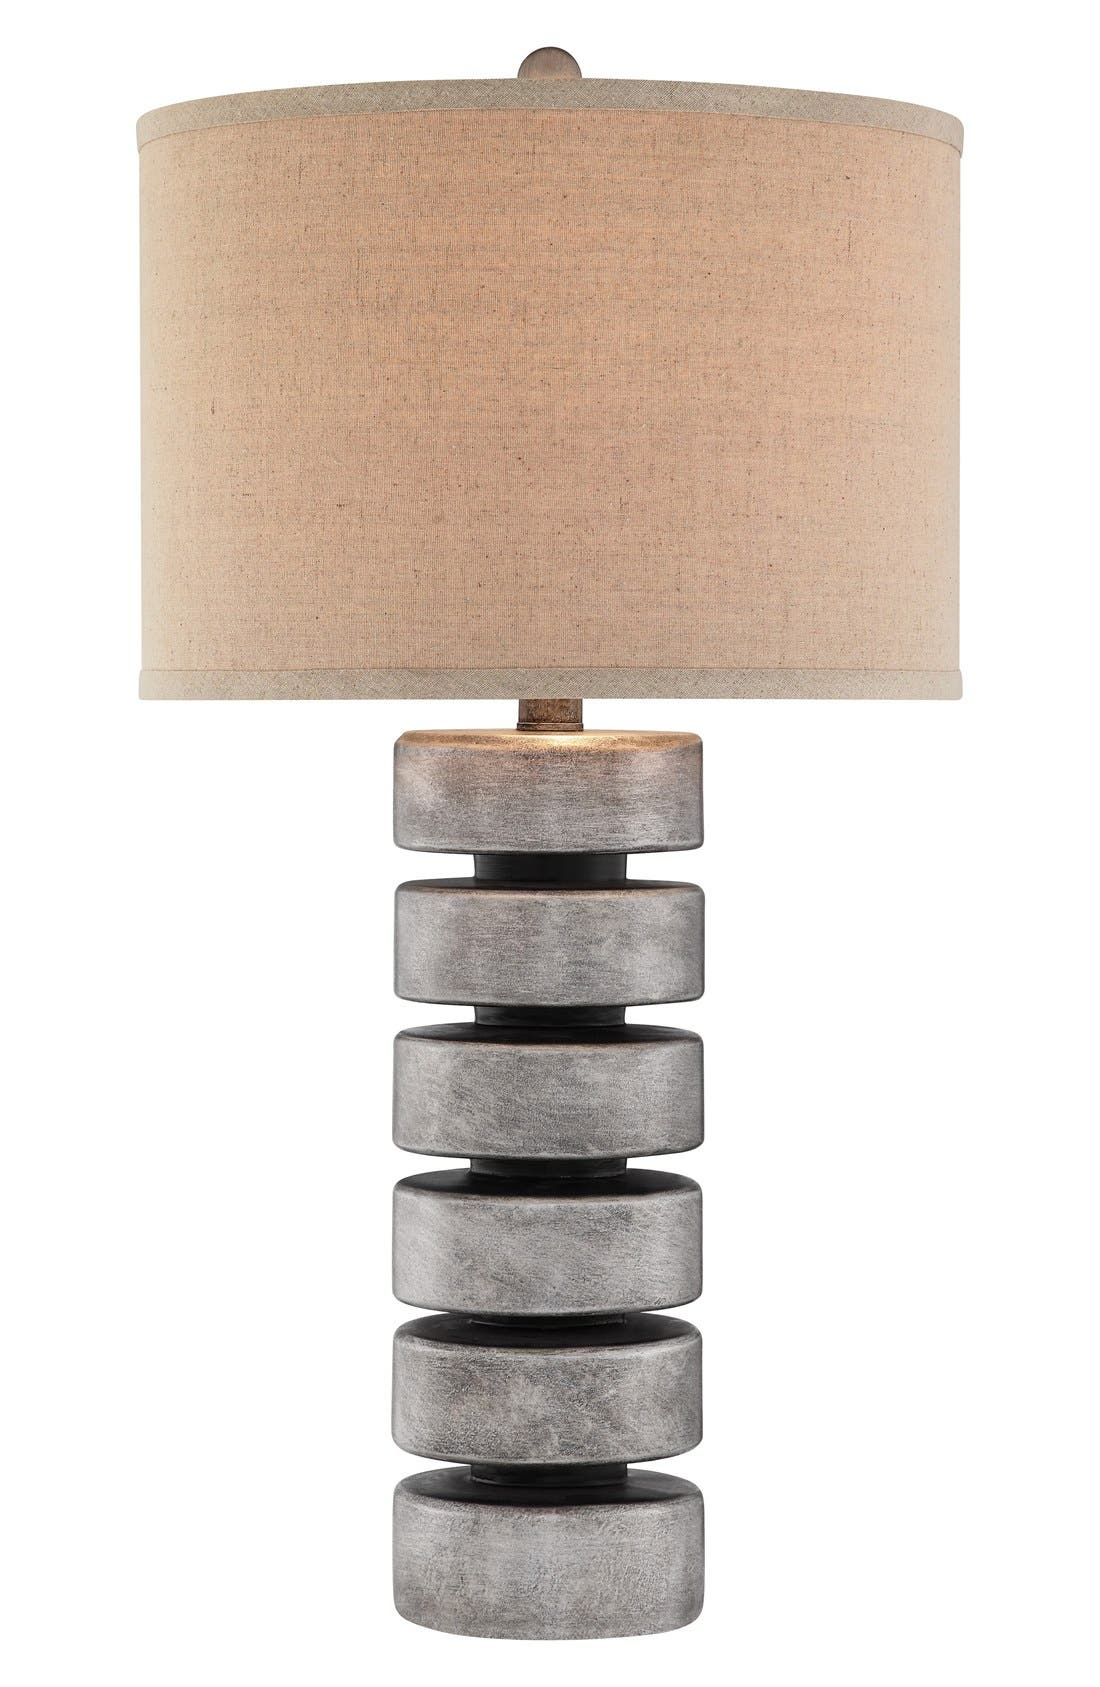 JALEXANDER LIGHTING 'Stacked Disc' Table Lamp